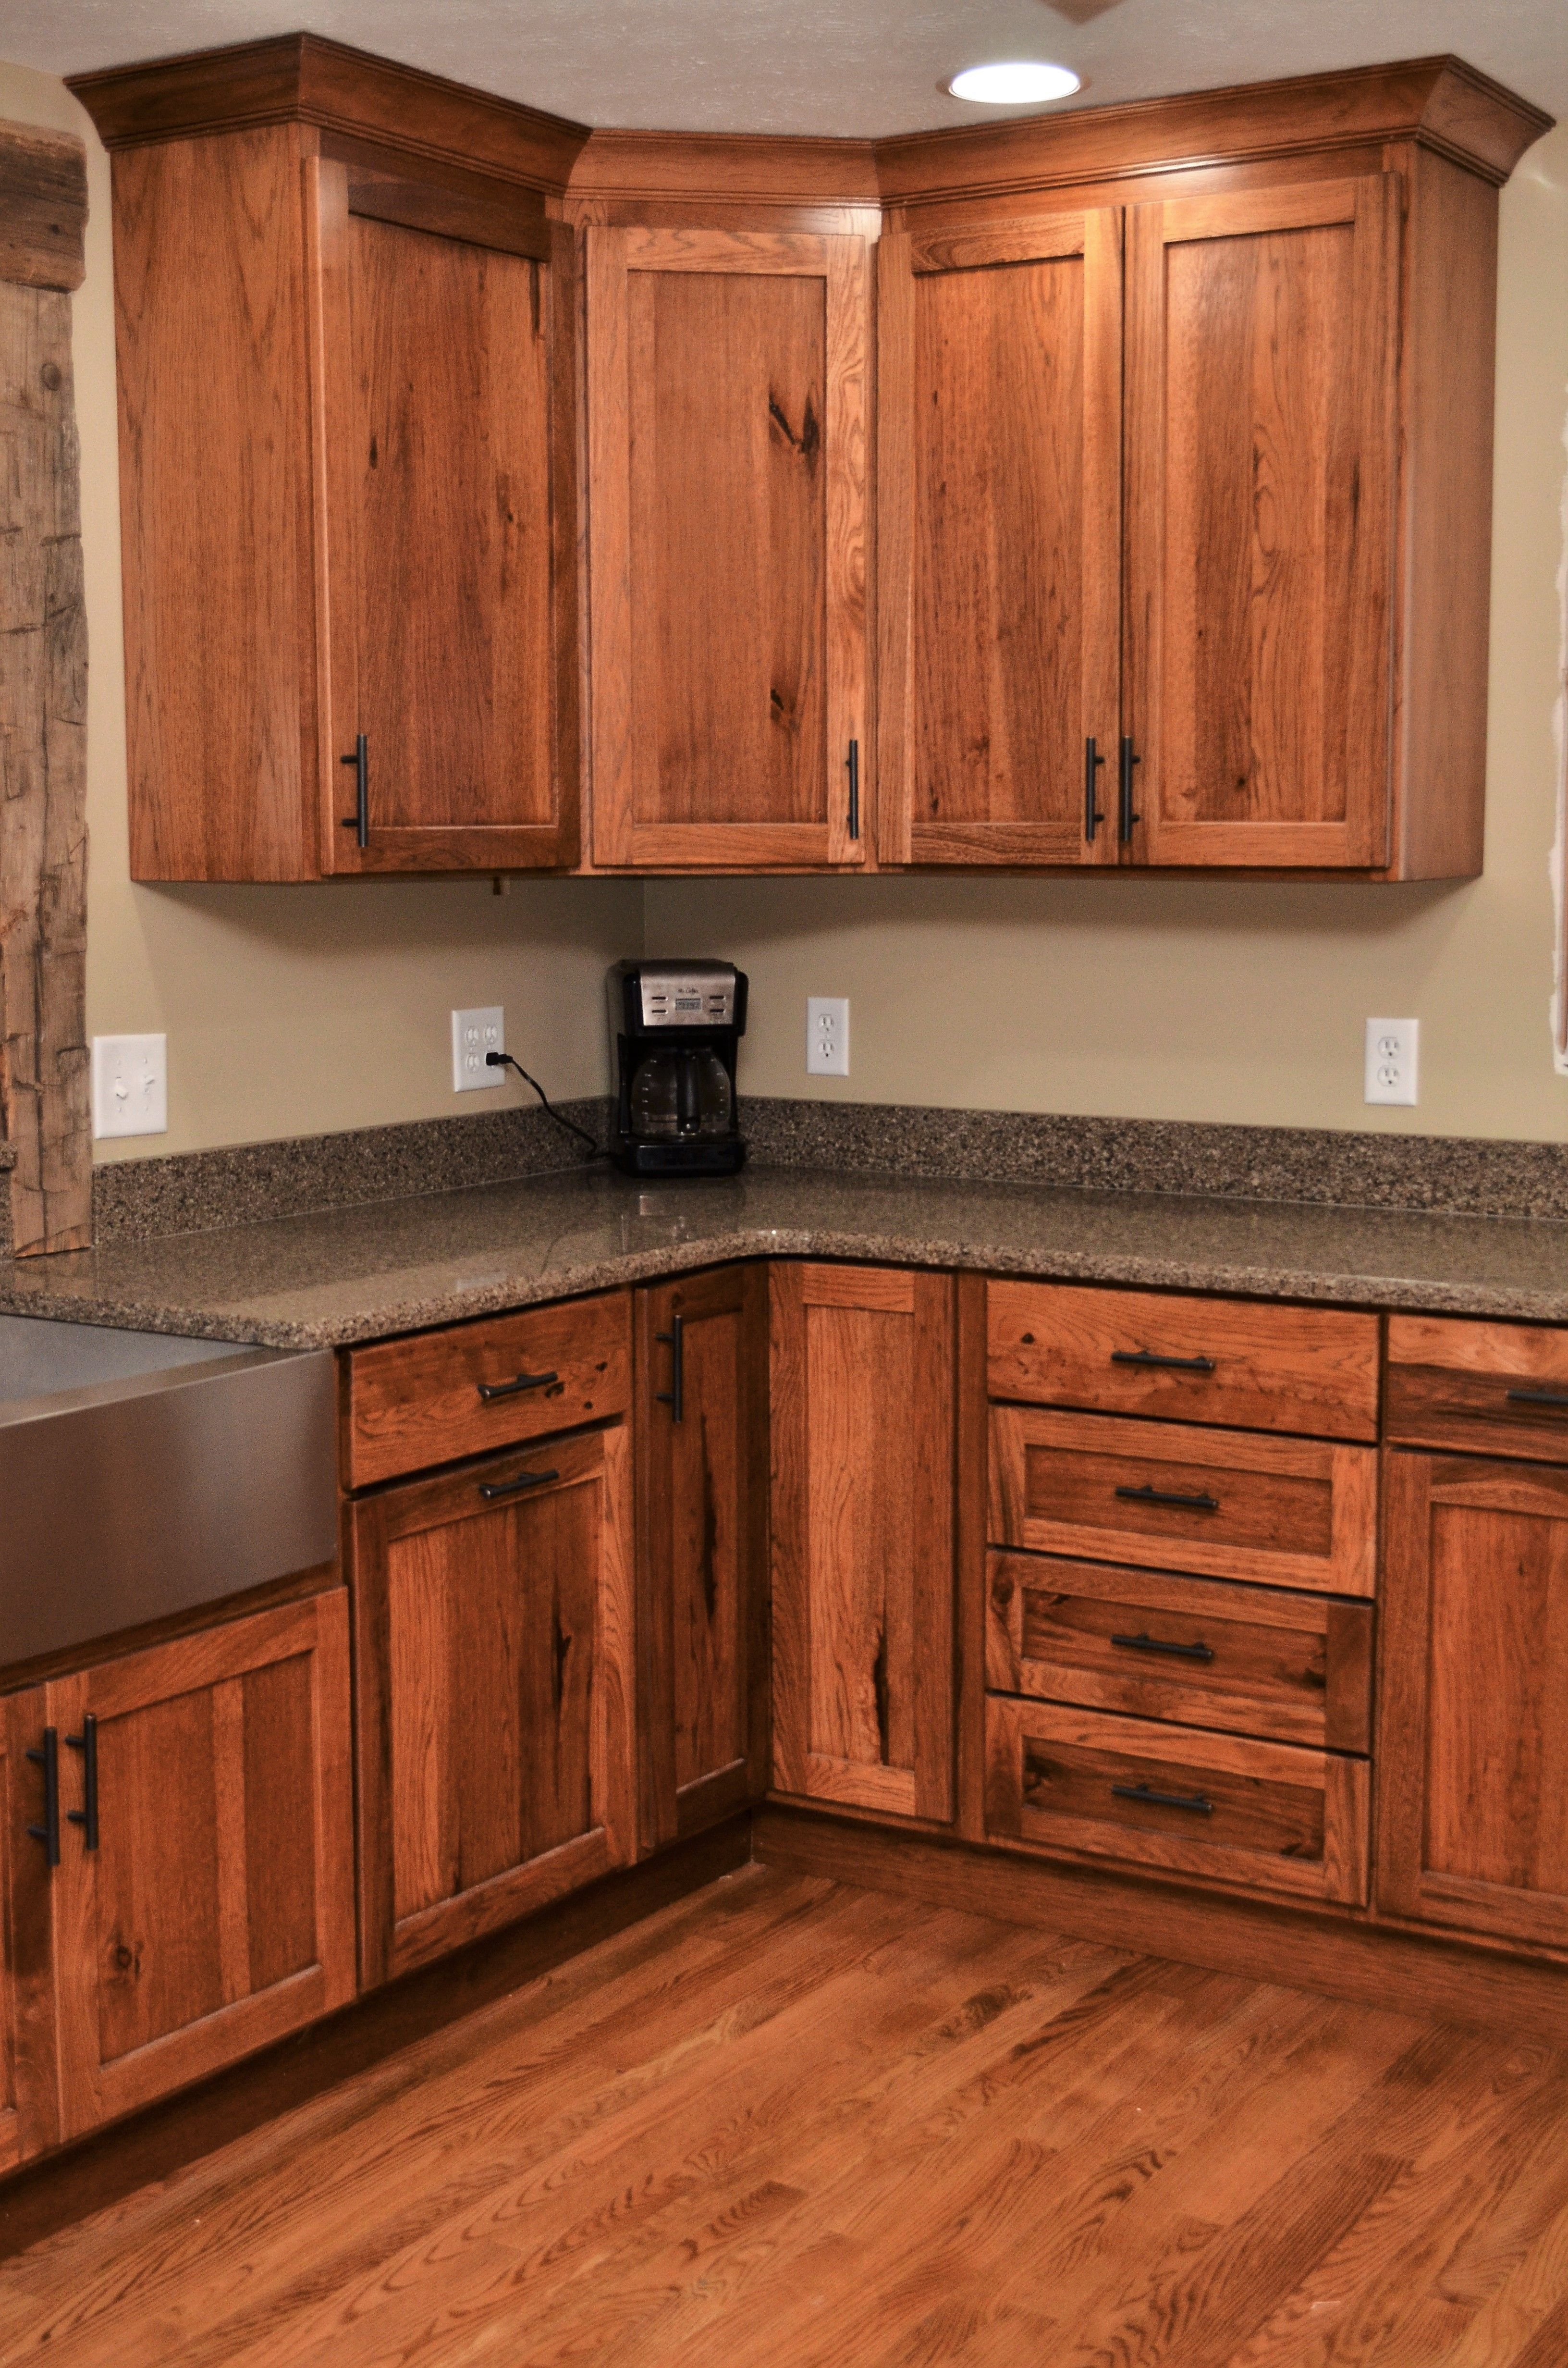 Haas Door Style Shakertown Rustic Hickory Pecan Small Cottage Kitchen Kitchen Design Kitchen Design Small